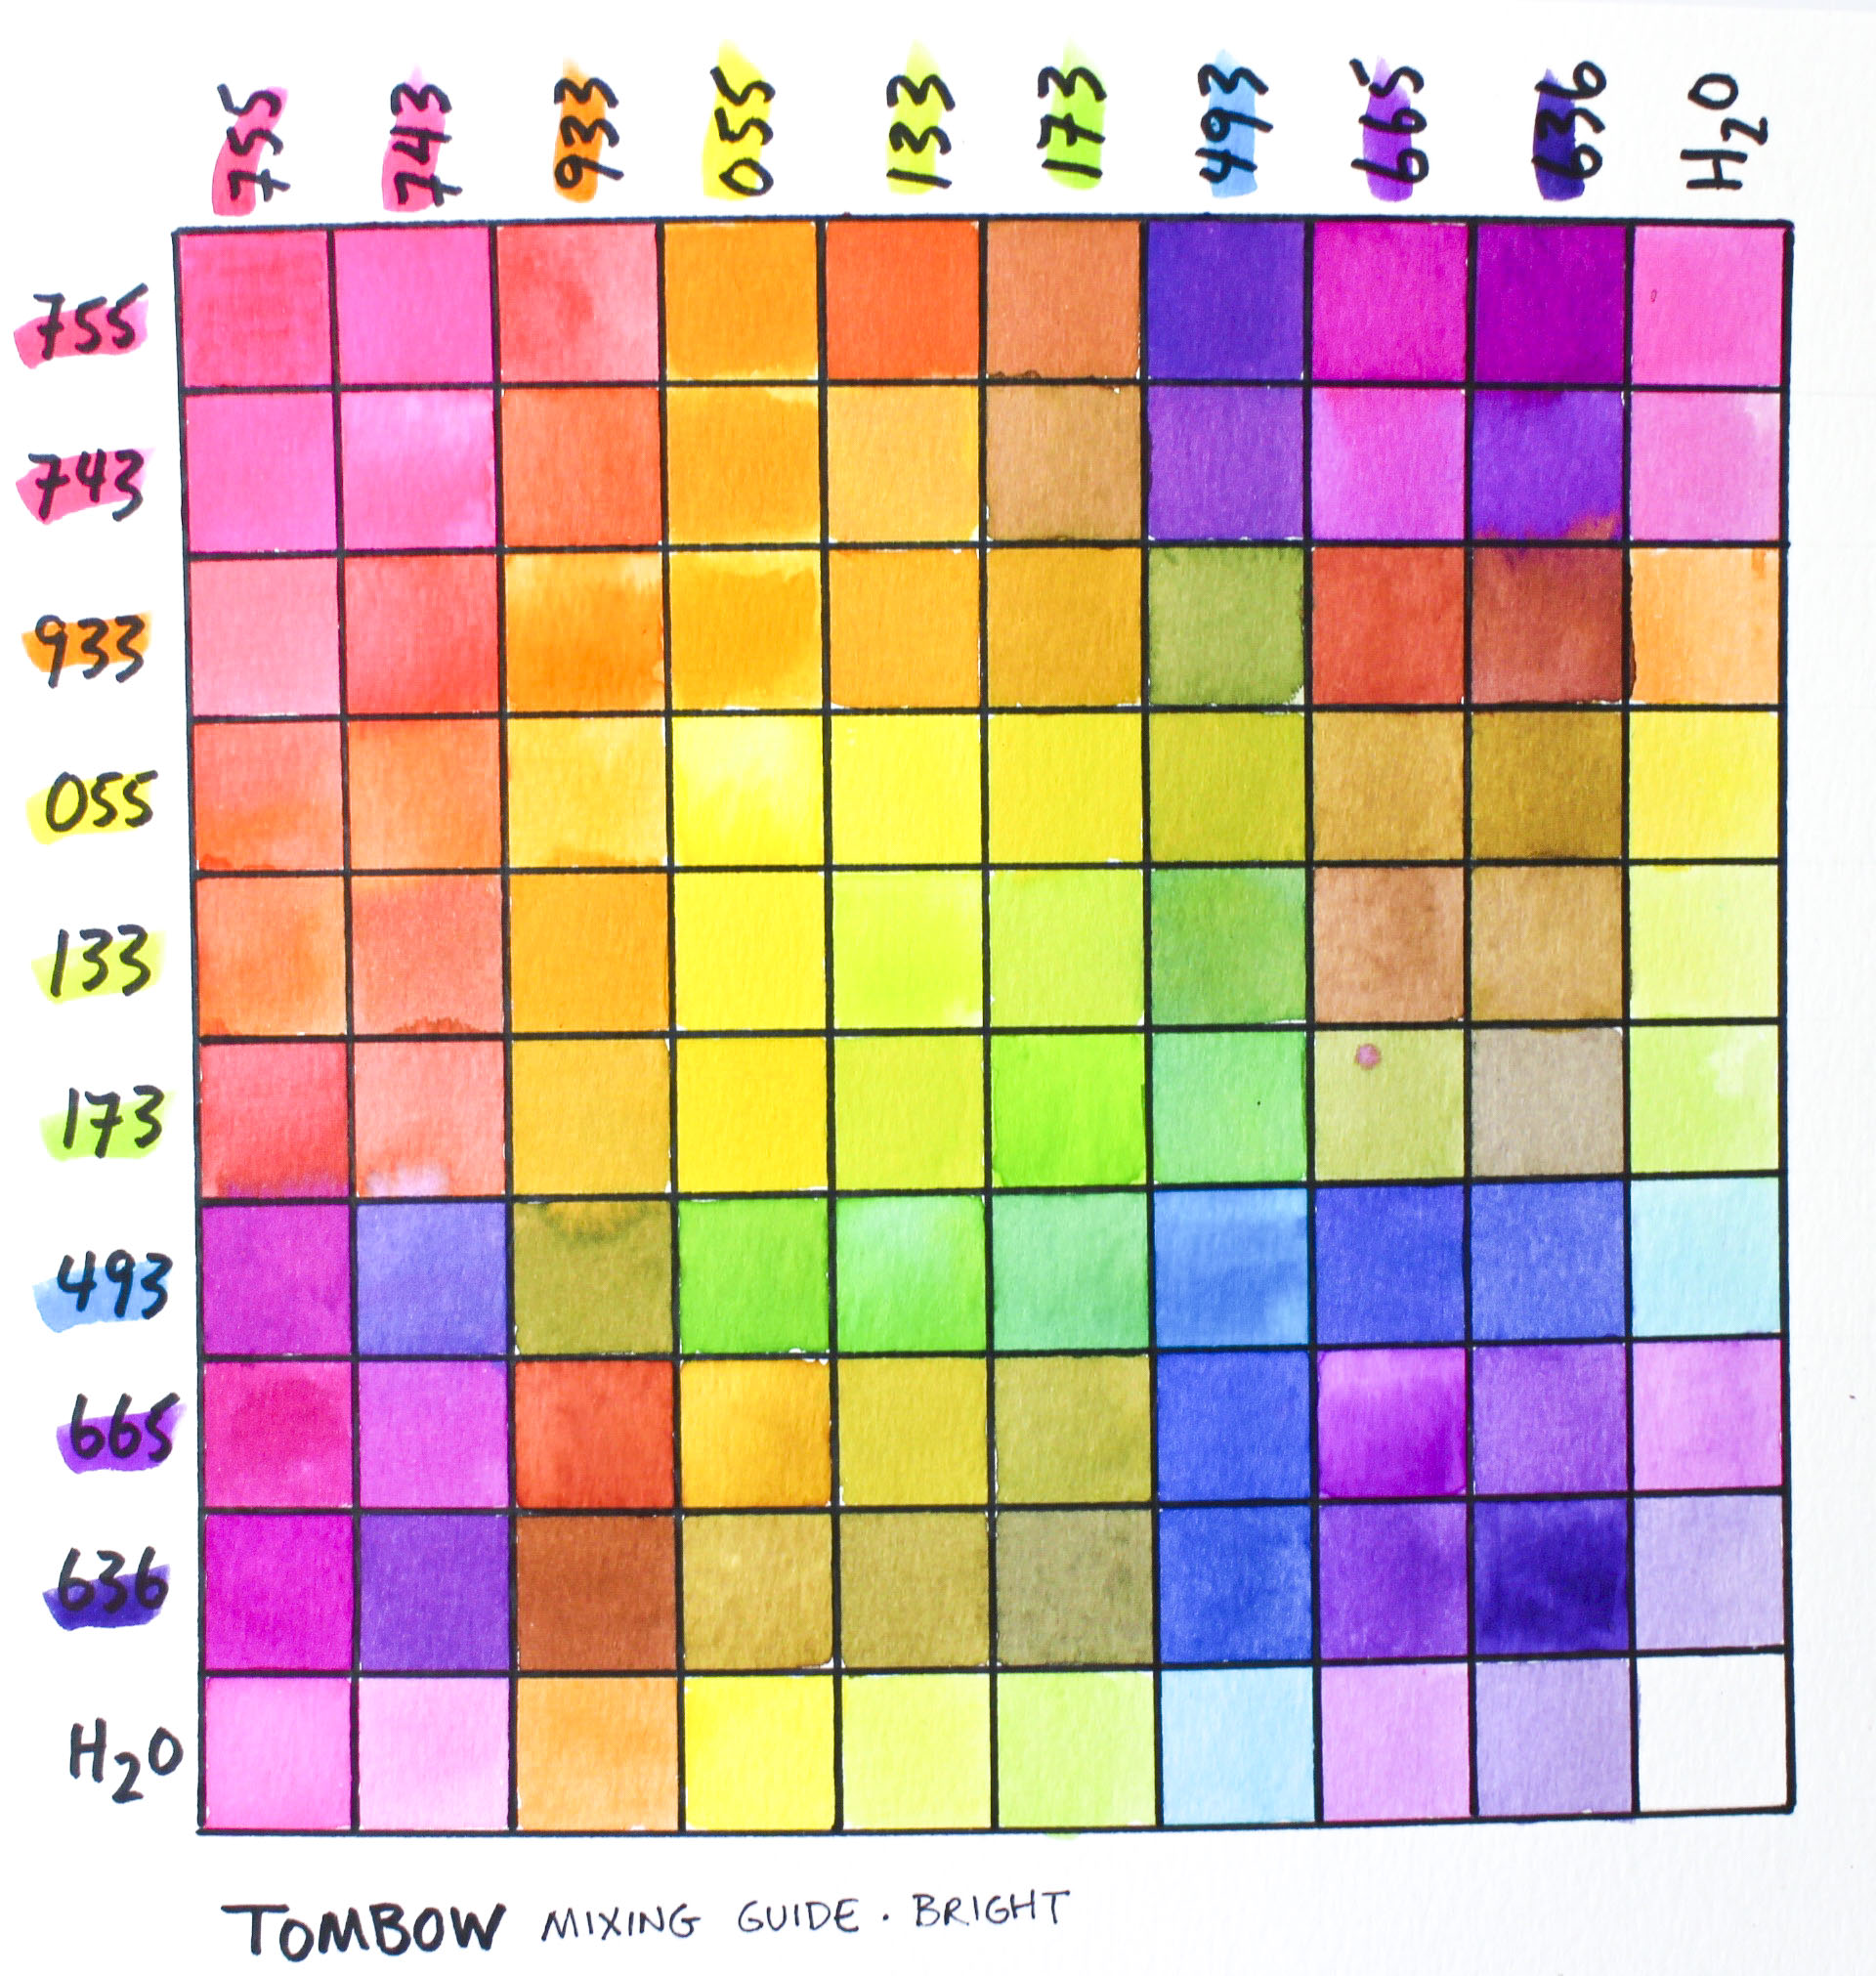 Make Your Own Blending And Mixing Guide For Tombow Dual Brush Pens